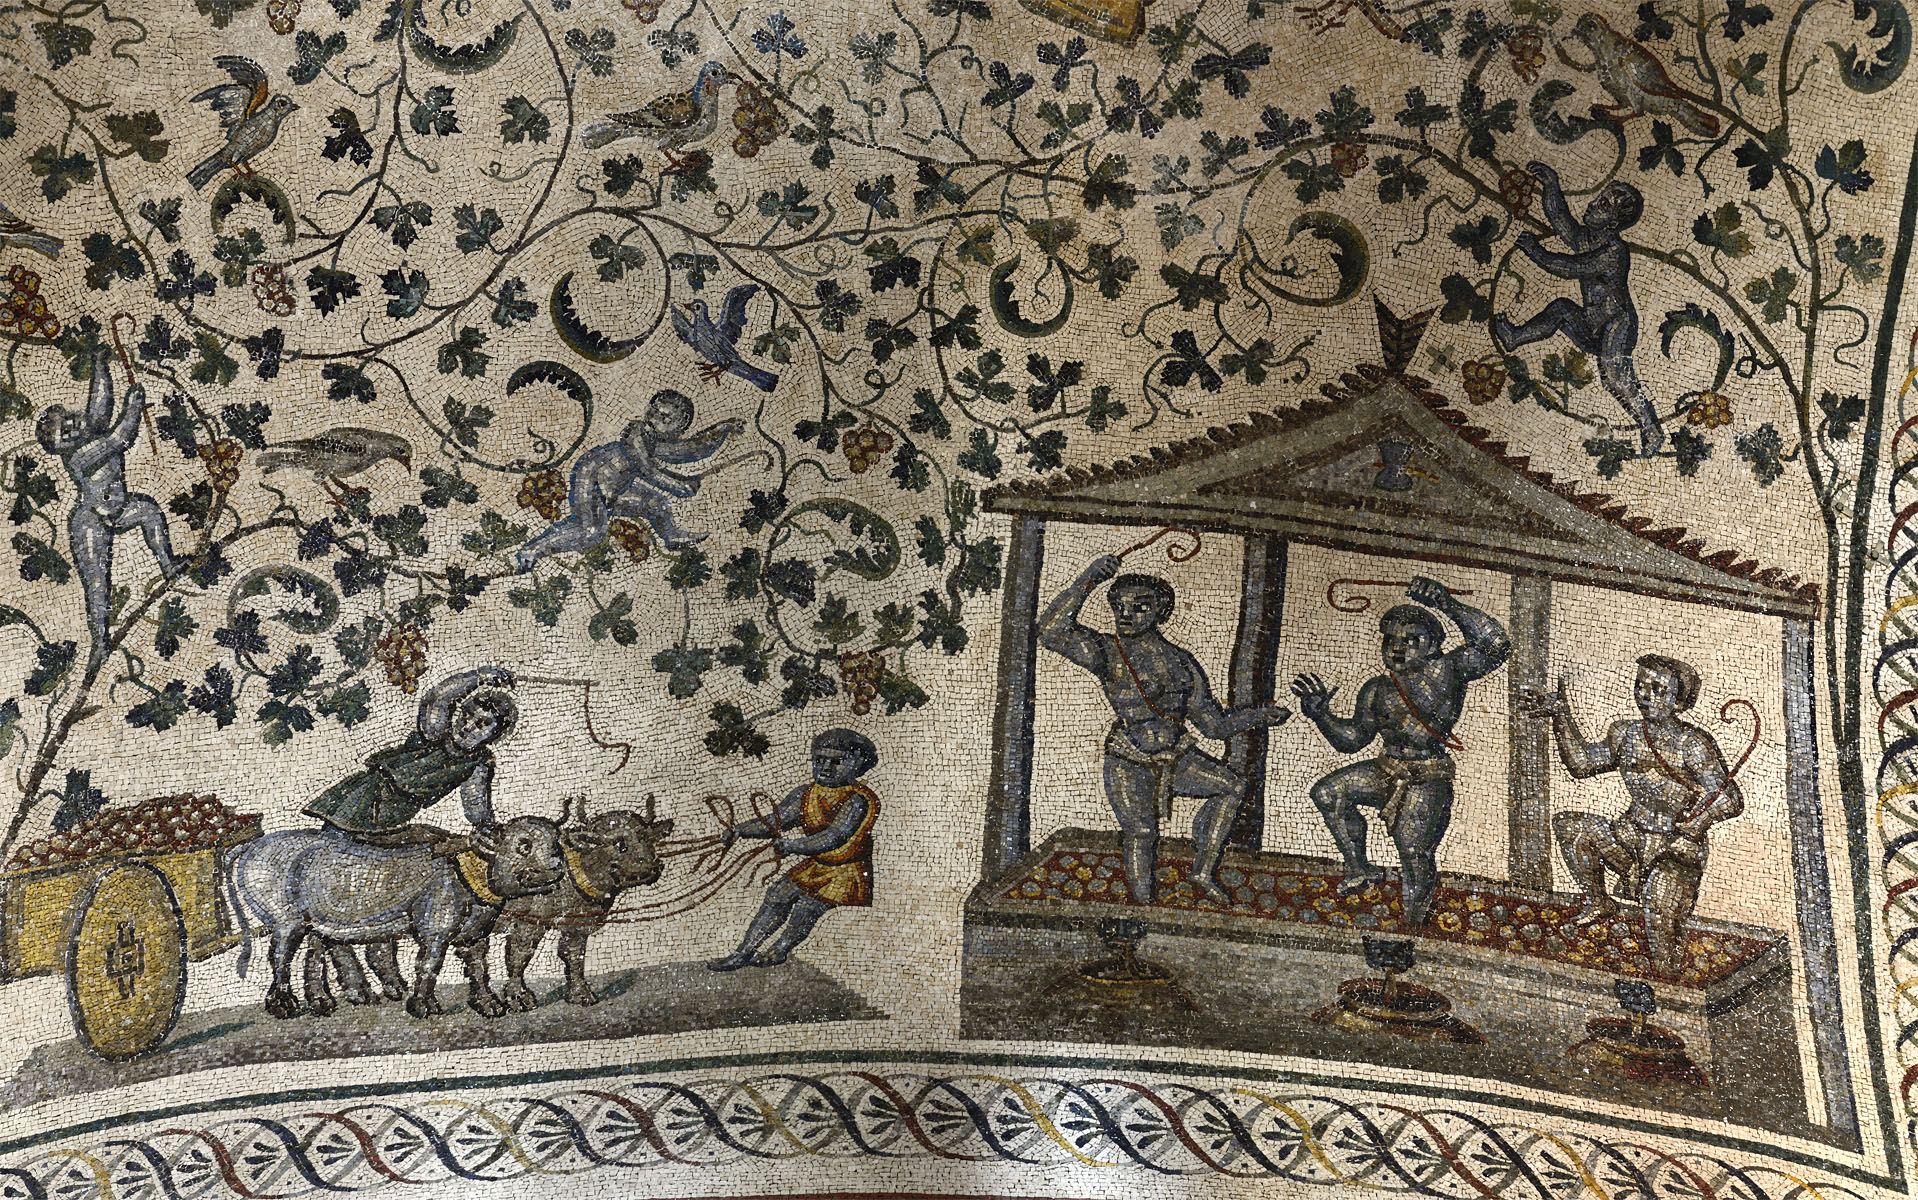 Mosaic decoration of the vault in the circular ambulatory (close-up). Mid-4th century CE. Rome, Mausoleum of Constantina Augusta (Church of S. Constantia)